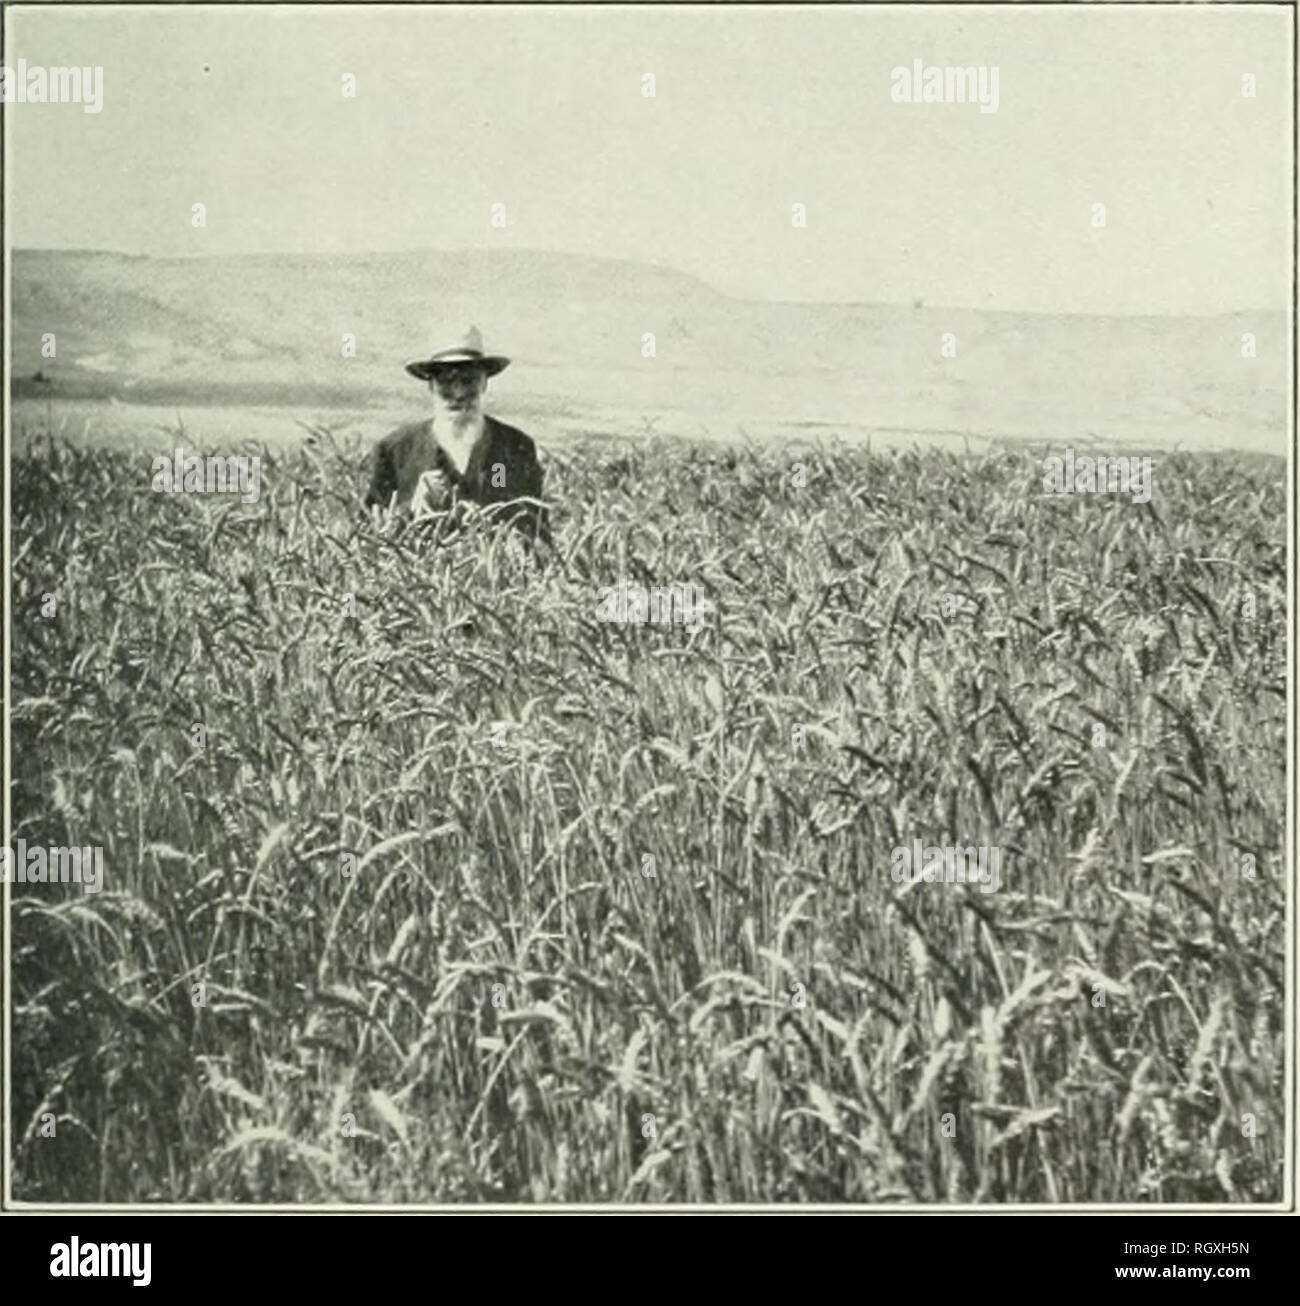 . Bulletin. 1901-13. Agriculture; Agriculture. hi . 1. A Poor Crop of w-i â . i â -n Farm, Utah s[ . ( n glujnty Arid. Fig. 2.âa Crop of Wheat Grown Without Irrigation in the Cache Valley, Utah.. Please note that these images are extracted from scanned page images that may have been digitally enhanced for readability - coloration and appearance of these illustrations may not perfectly resemble the original work.. United States. Bureau of Plant Industry, Soils, and Agricultural Engineering. Washington Govt. Print. Off - Stock Image